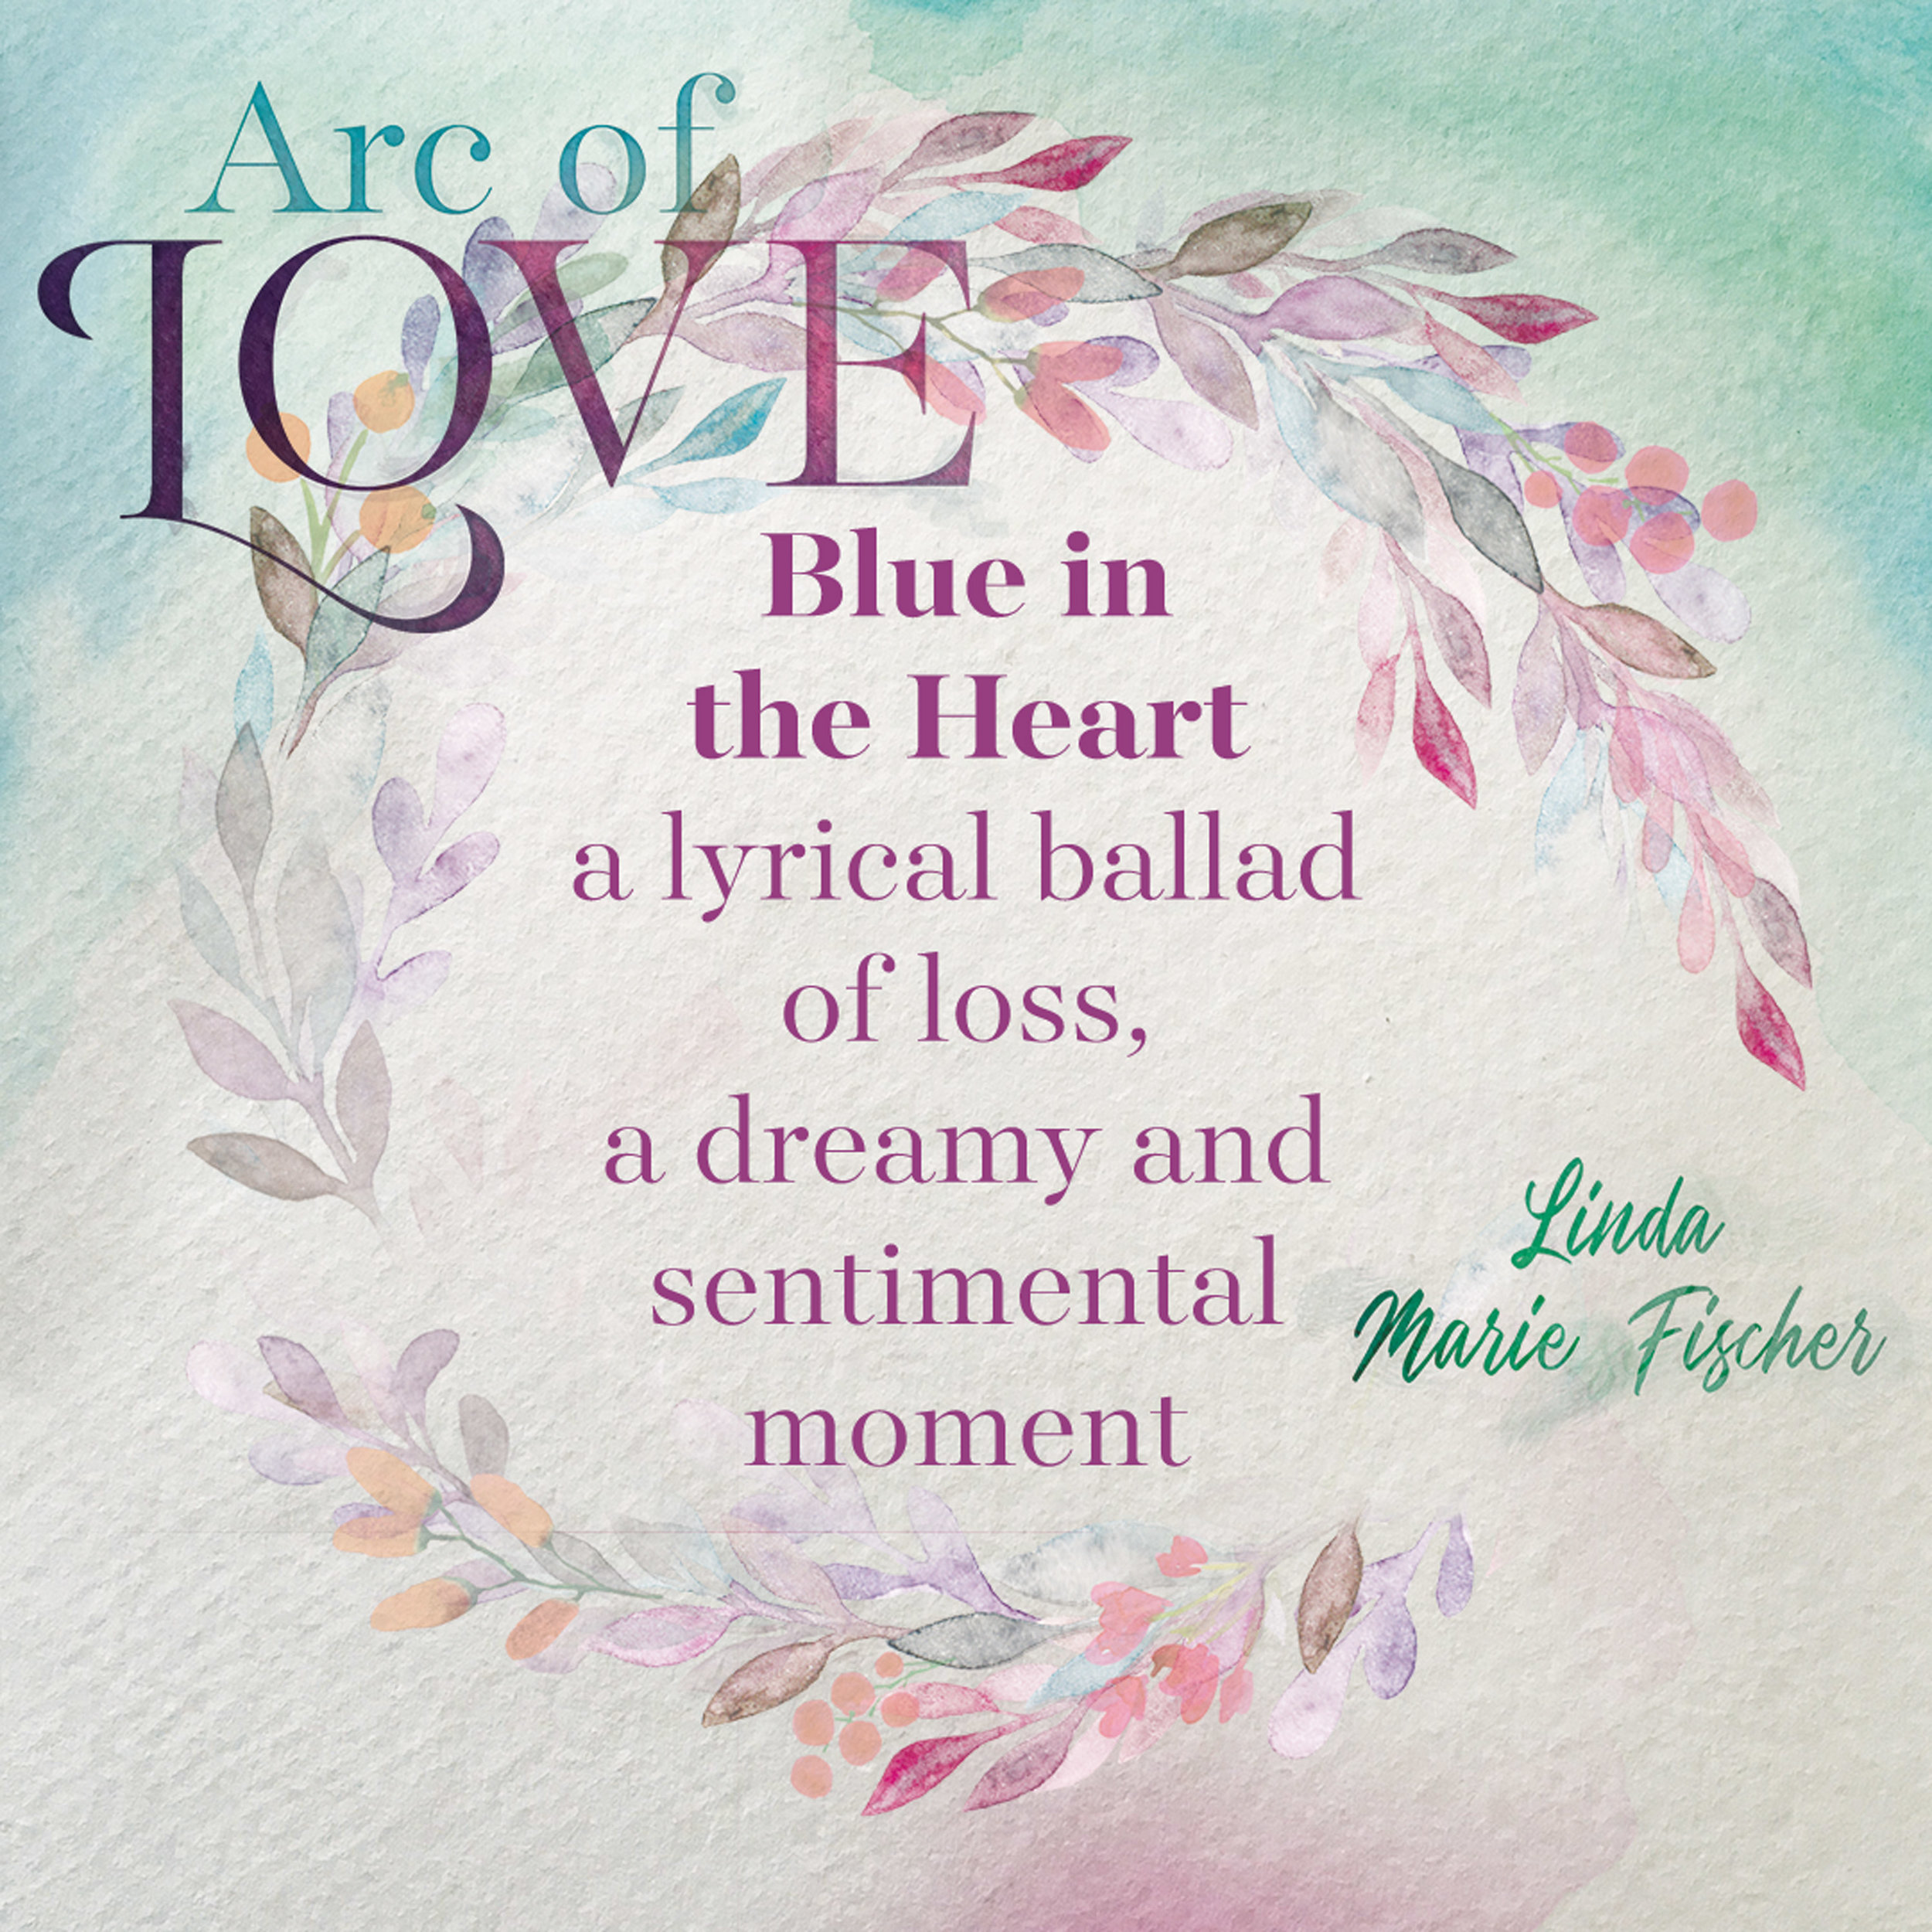 Arc of Love - Blue in the Heart.jpg